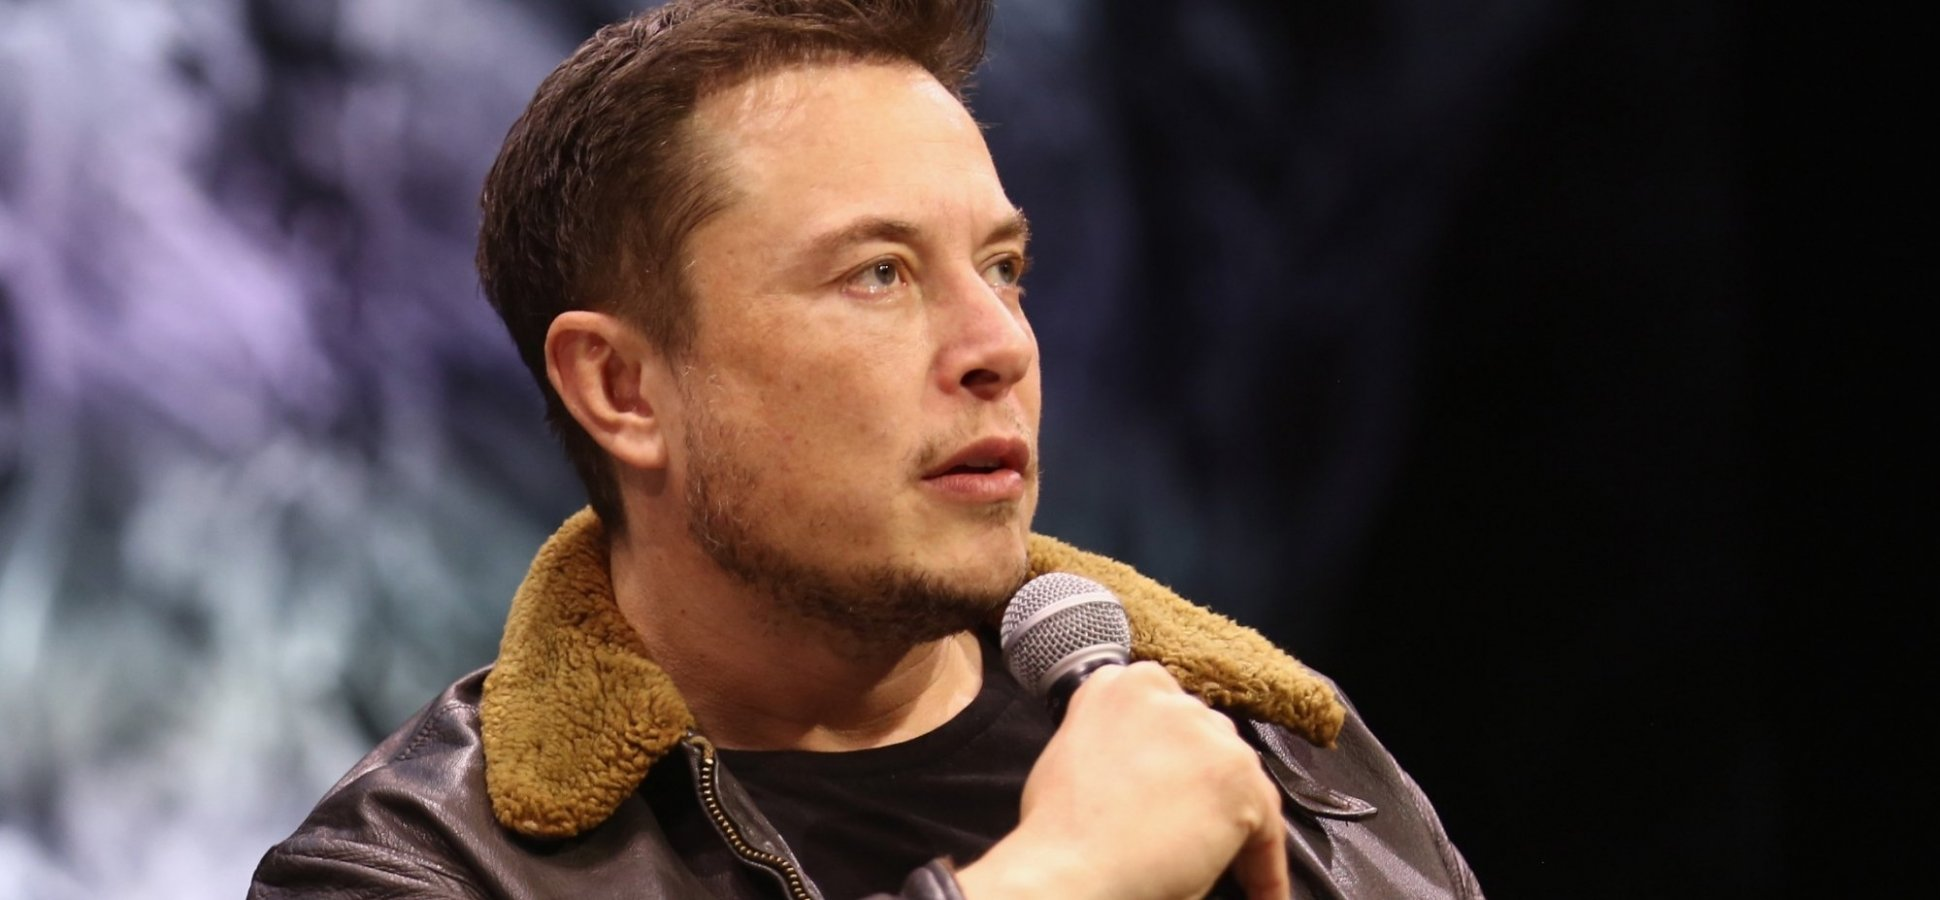 Here's What You Need to Be Wealthy and Wildly Successful, According to Elon Musk's Ex-Wife